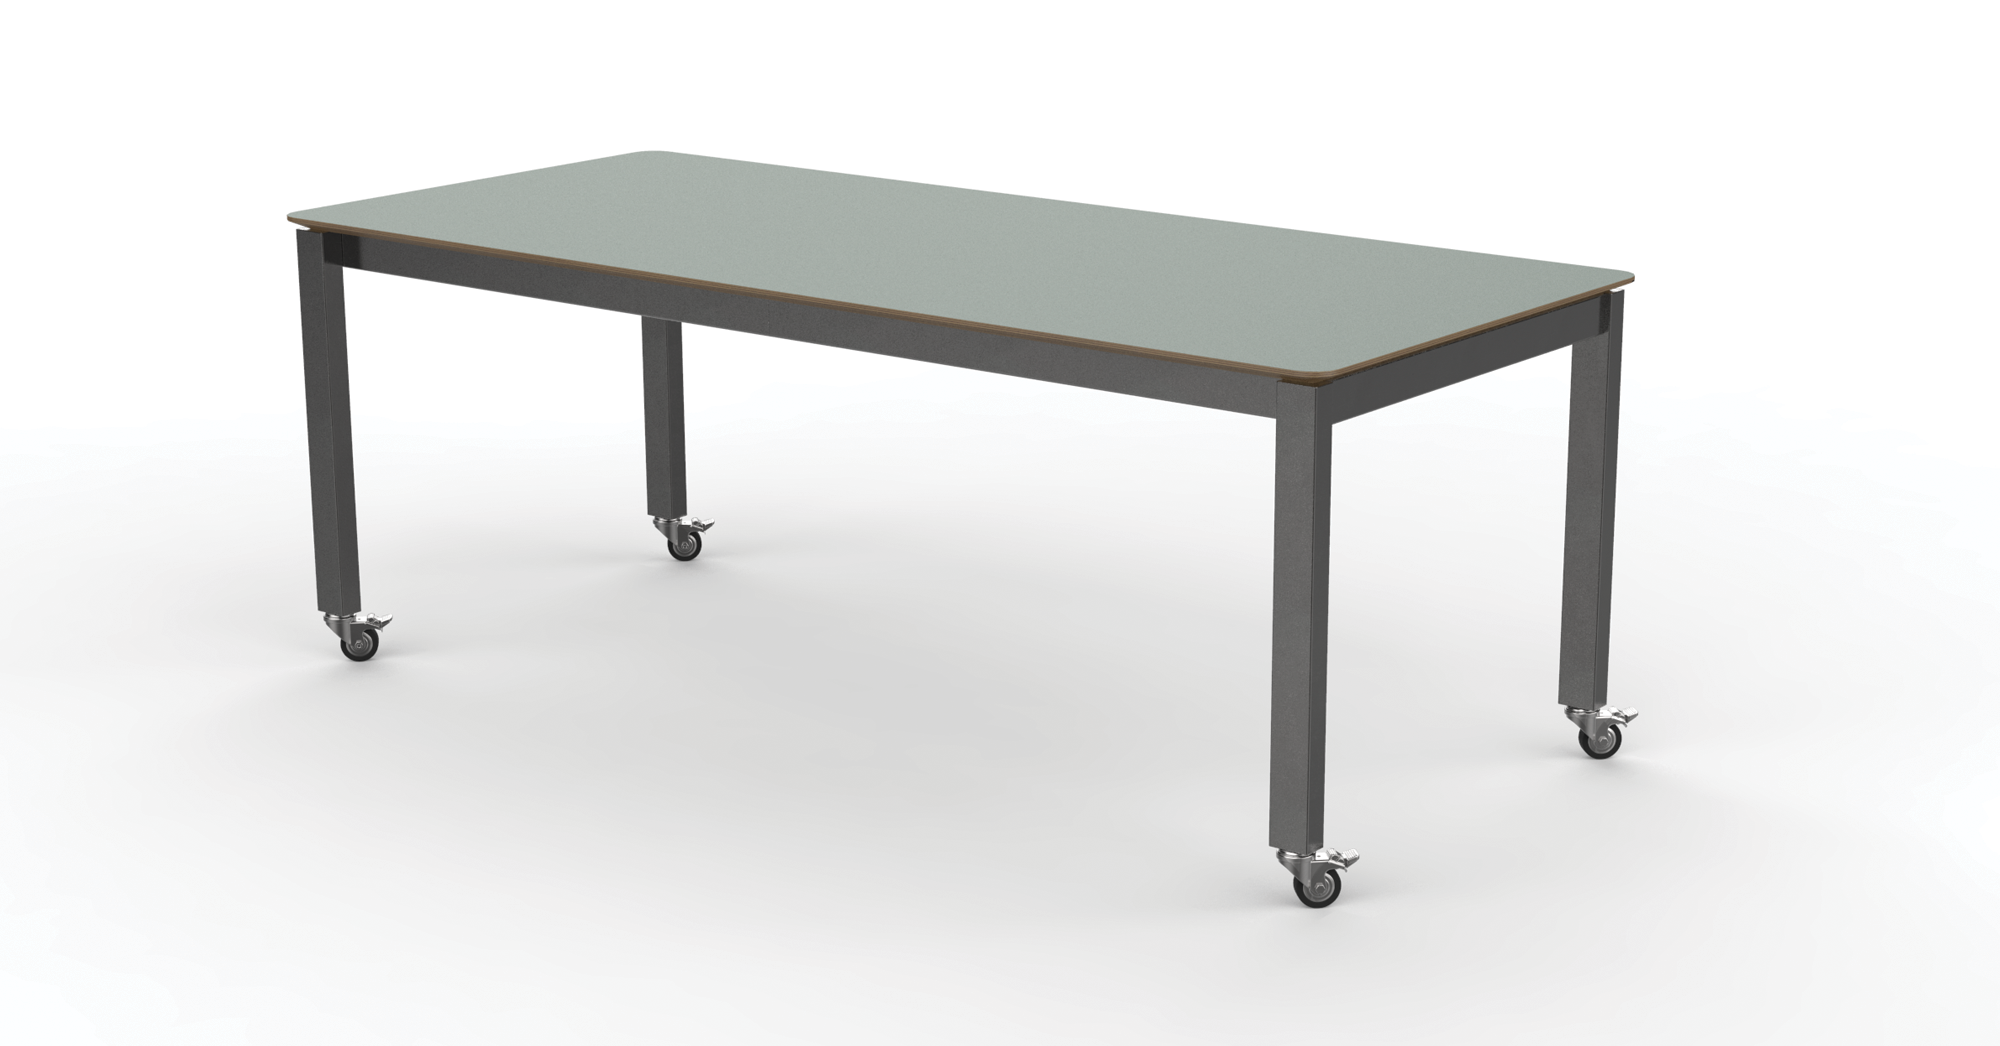 Custom Mobile table designed by Eric Schroeder